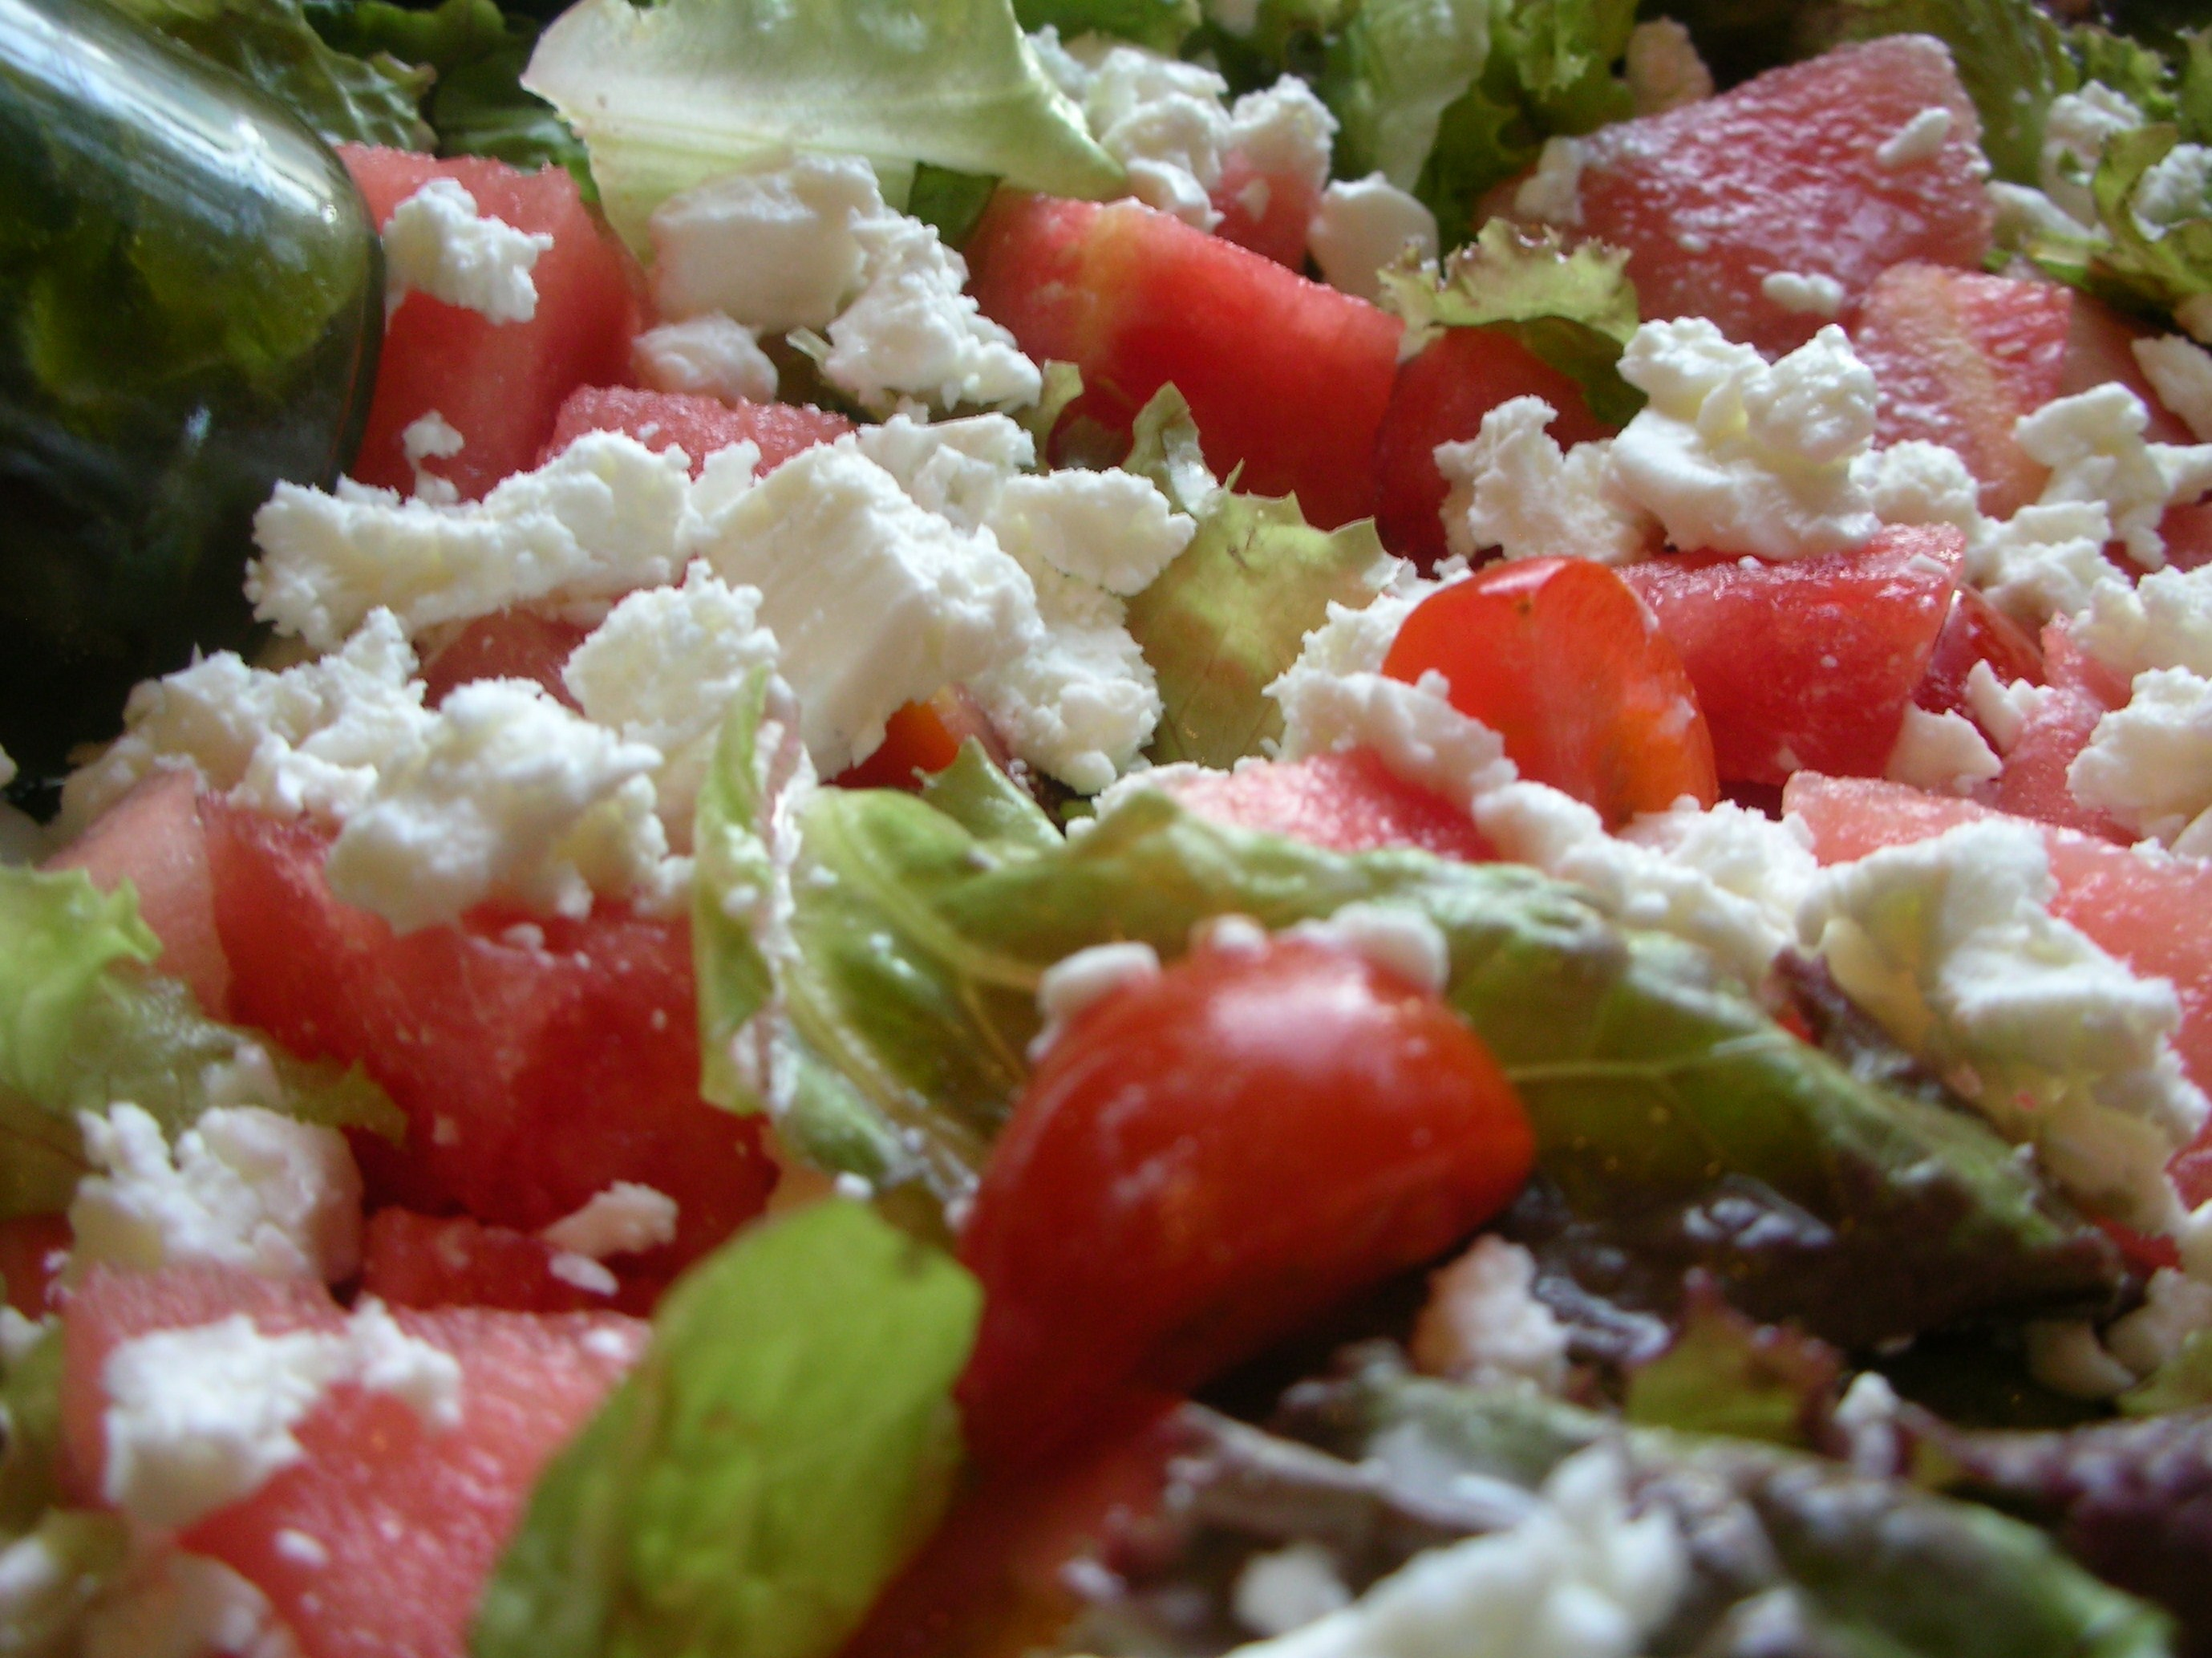 Watermelon Feta Tomato Salad with Basil Vinaigrette